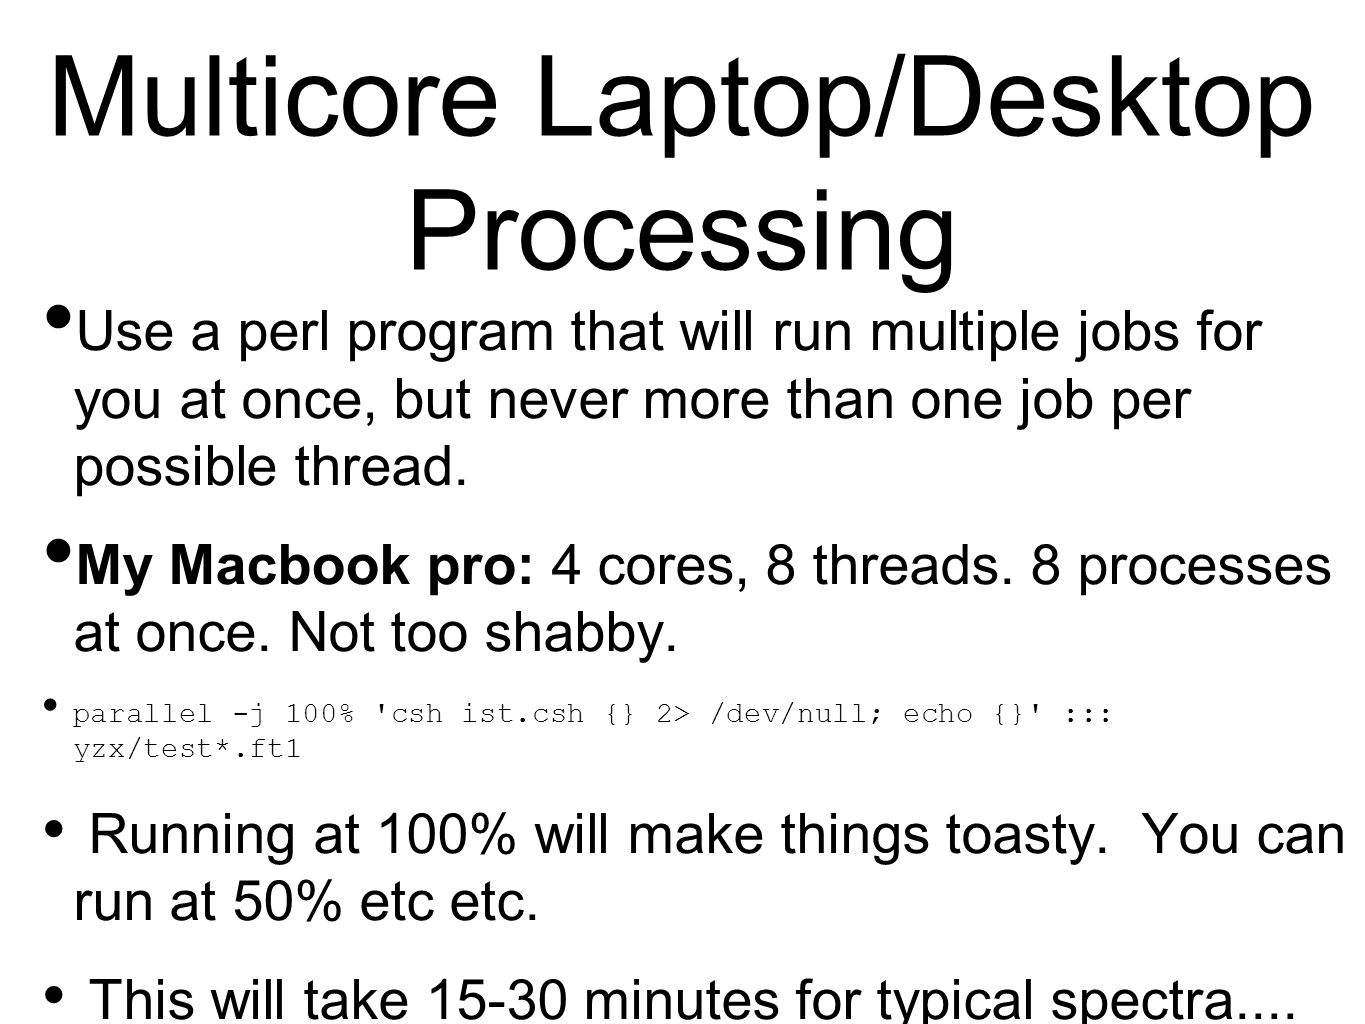 Multicore Laptop/Desktop Processing